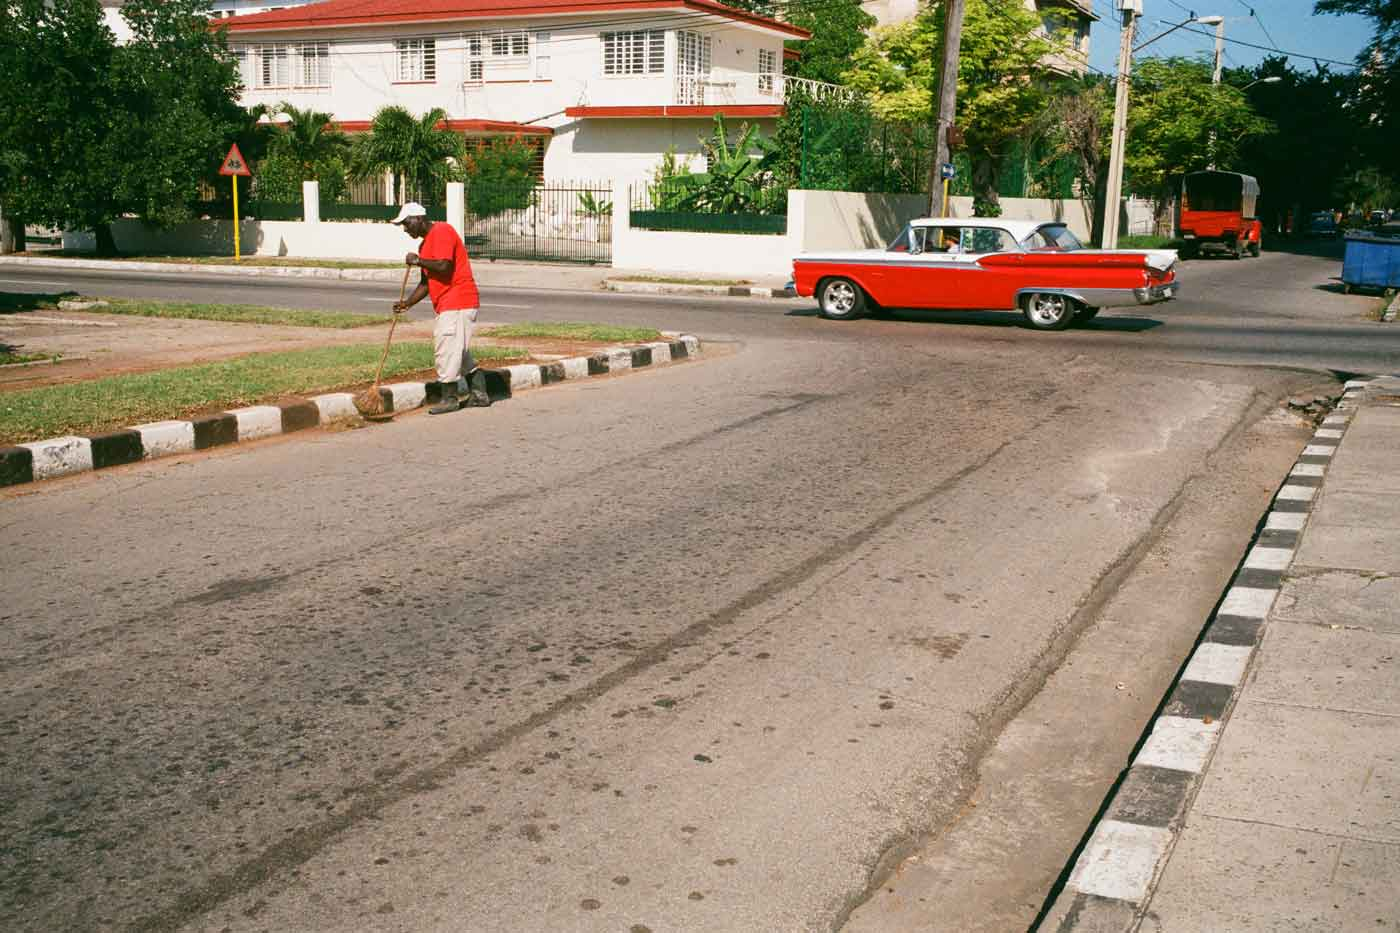 35mm-focal-length-guide-tips-beginner-documentary-story-telling-zone-focus-field-view-perspective-compression-angle-summilux-cuba-havana-film-photography-pattern-colour